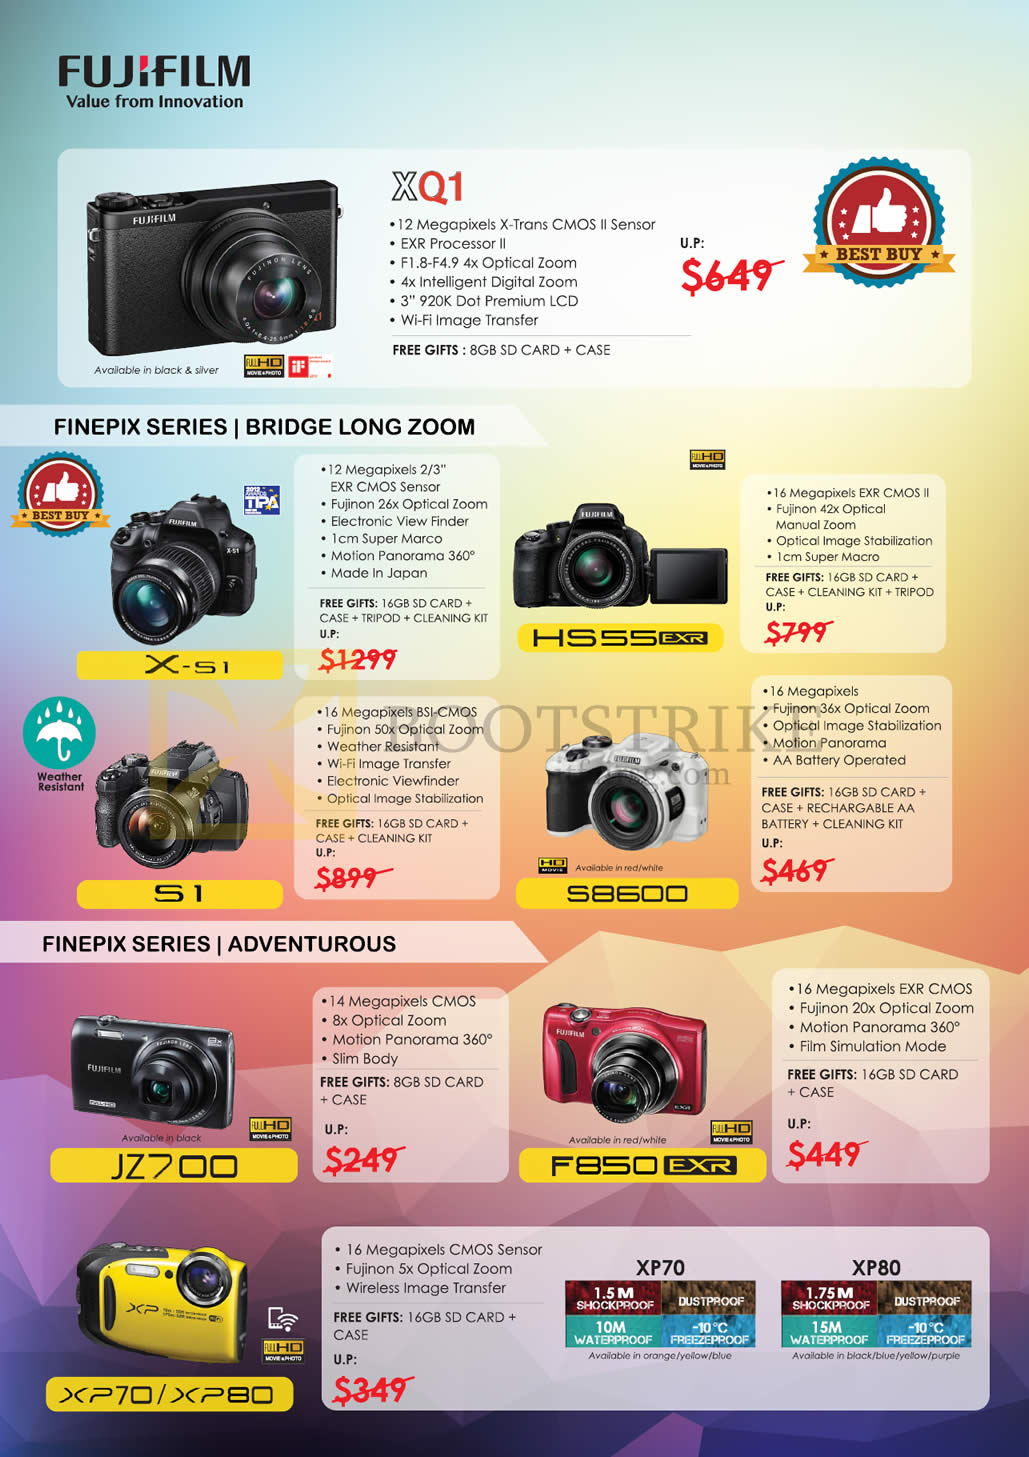 Fujifilm Digital Cameras (No Prices) XQ1, X-51, S1, HS55, S8600, JZ700, F850, XP70, XP80